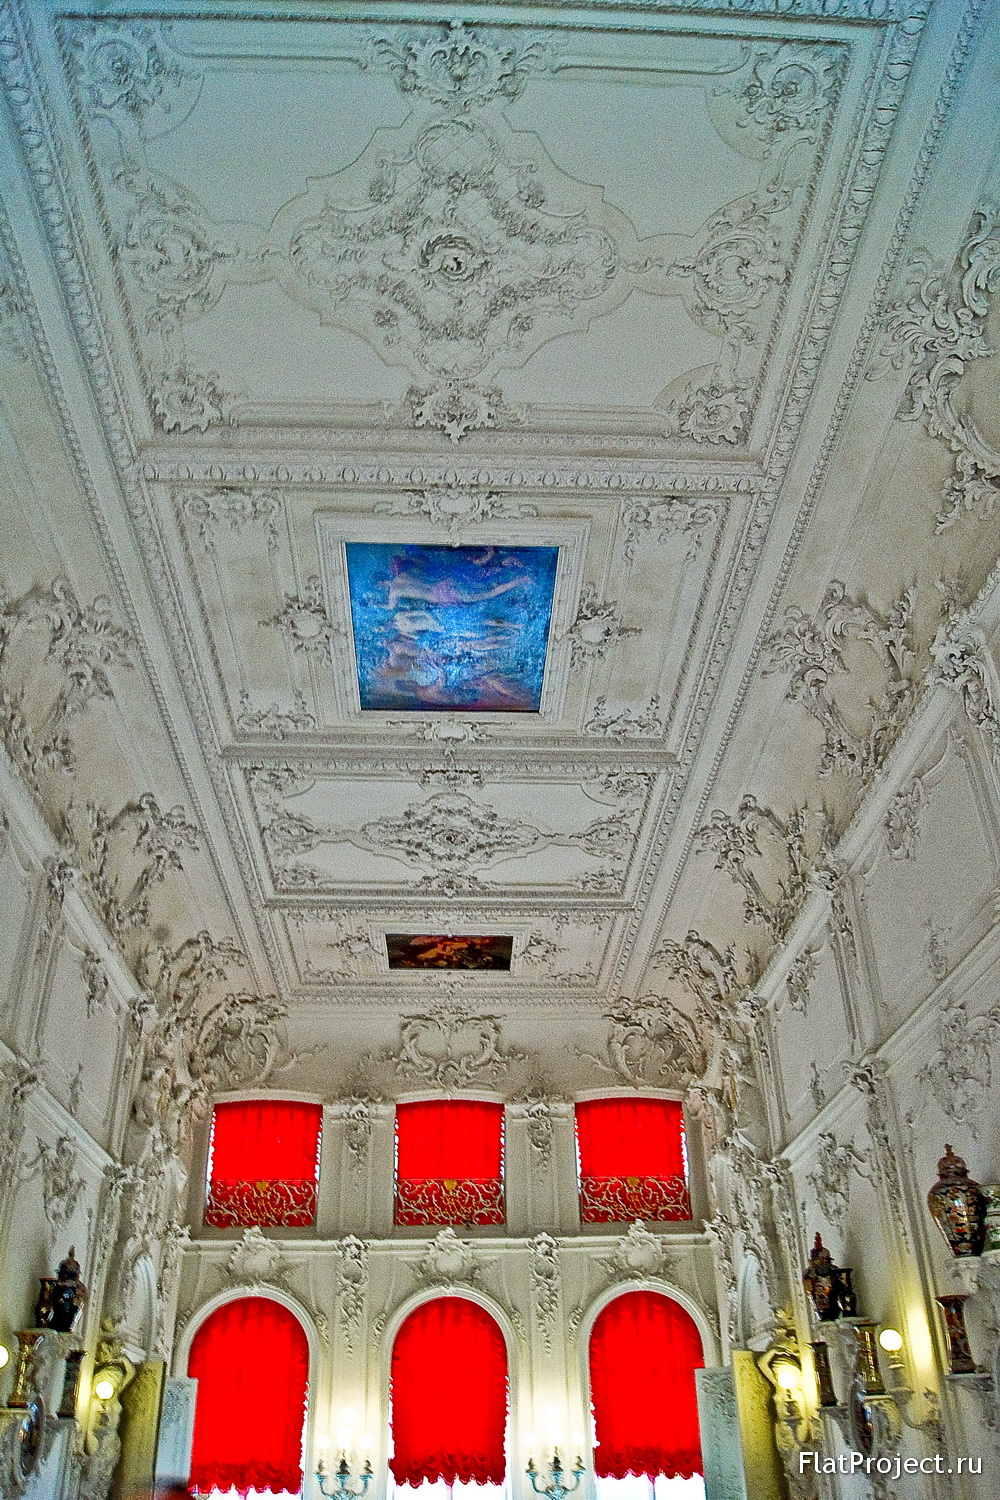 The Catherine Palace interiors – photo 15